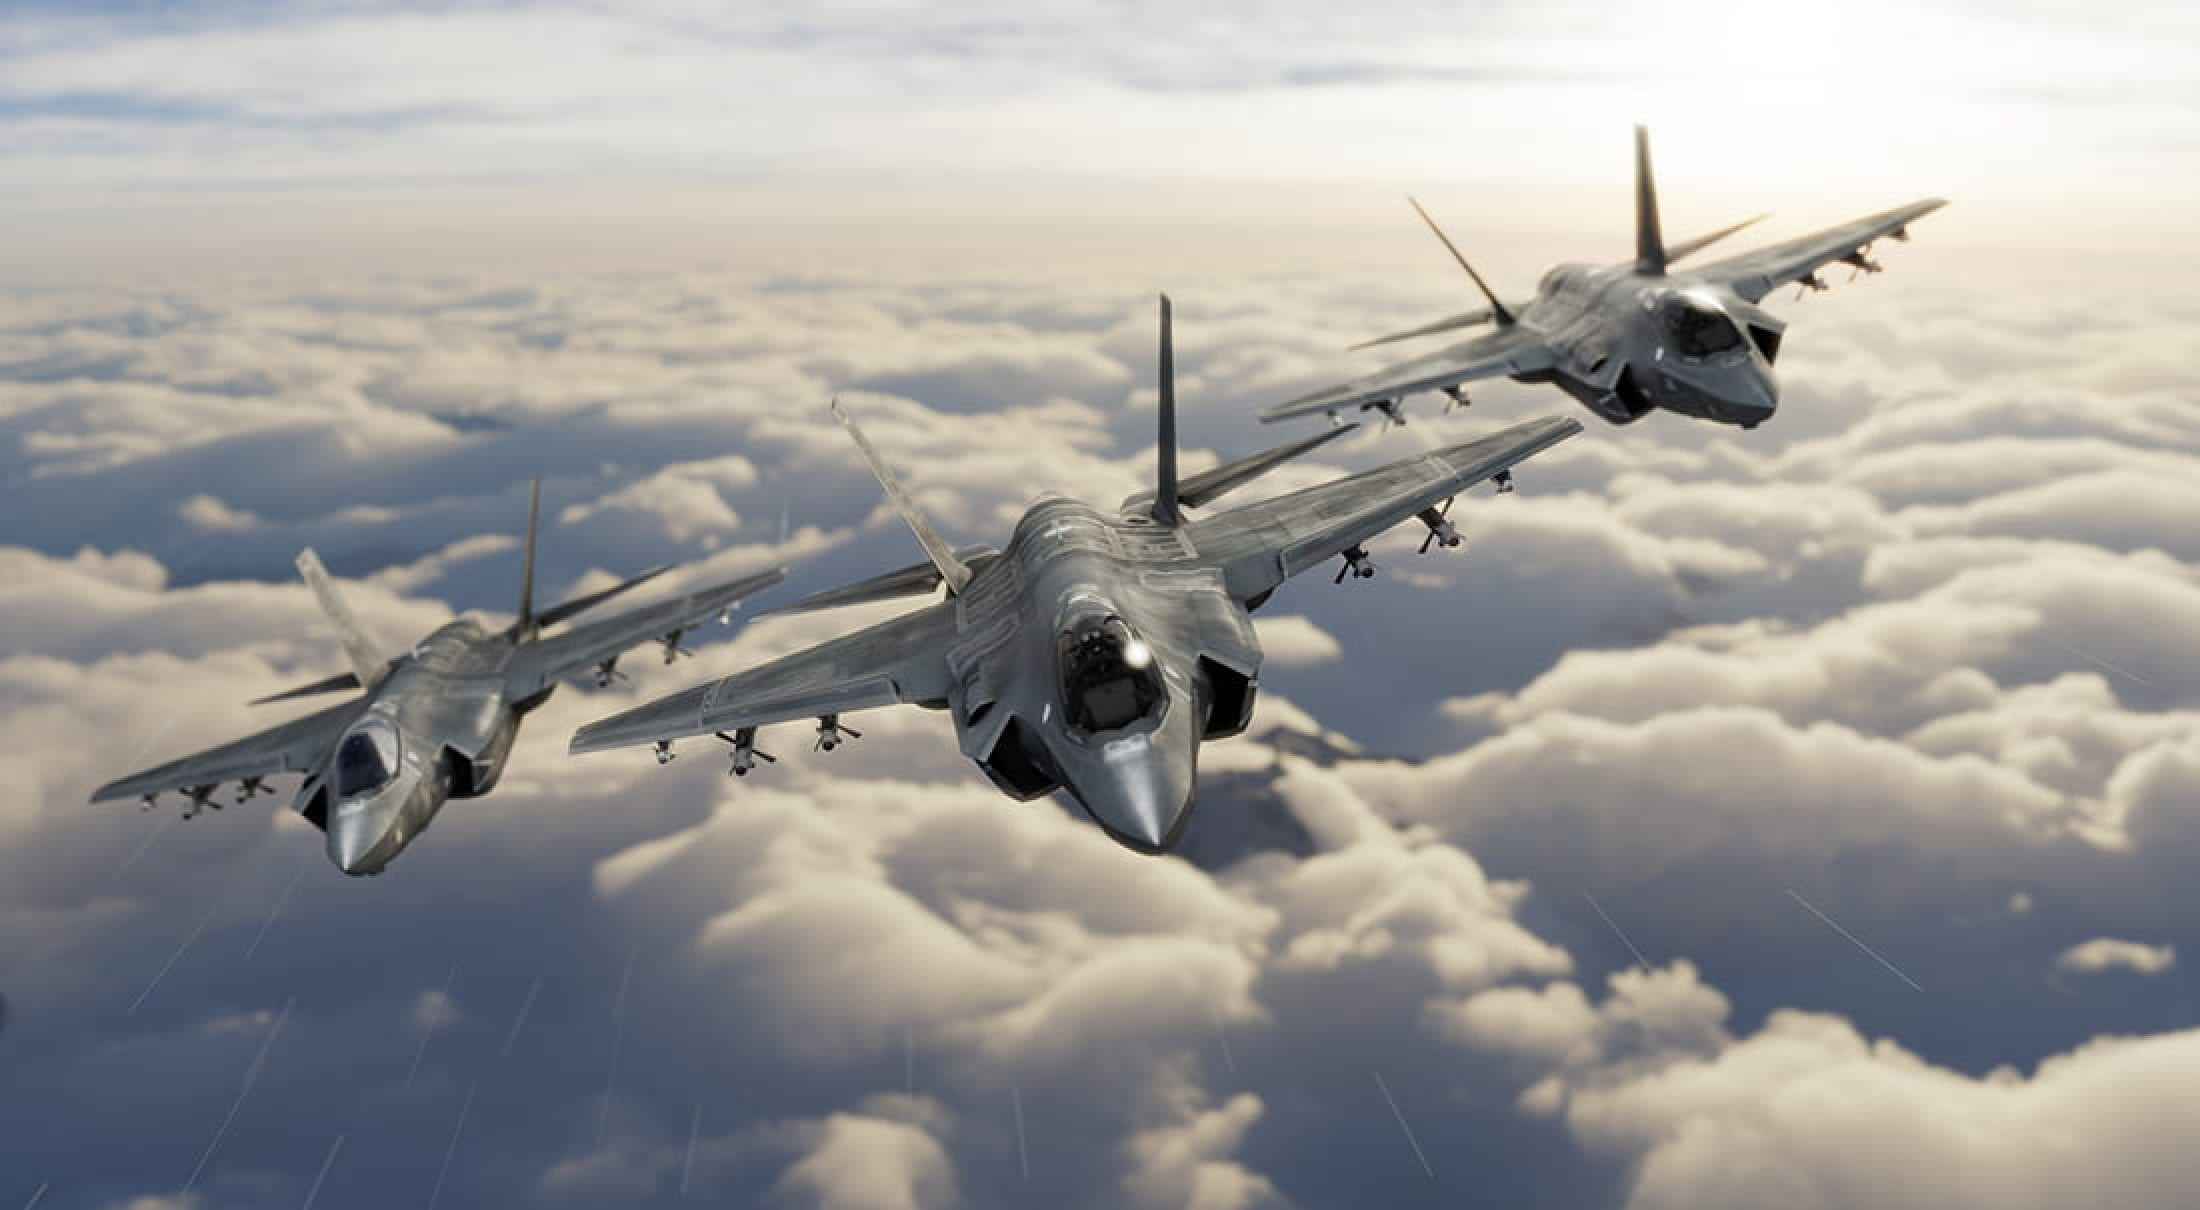 SMU-Air Force research collaboration